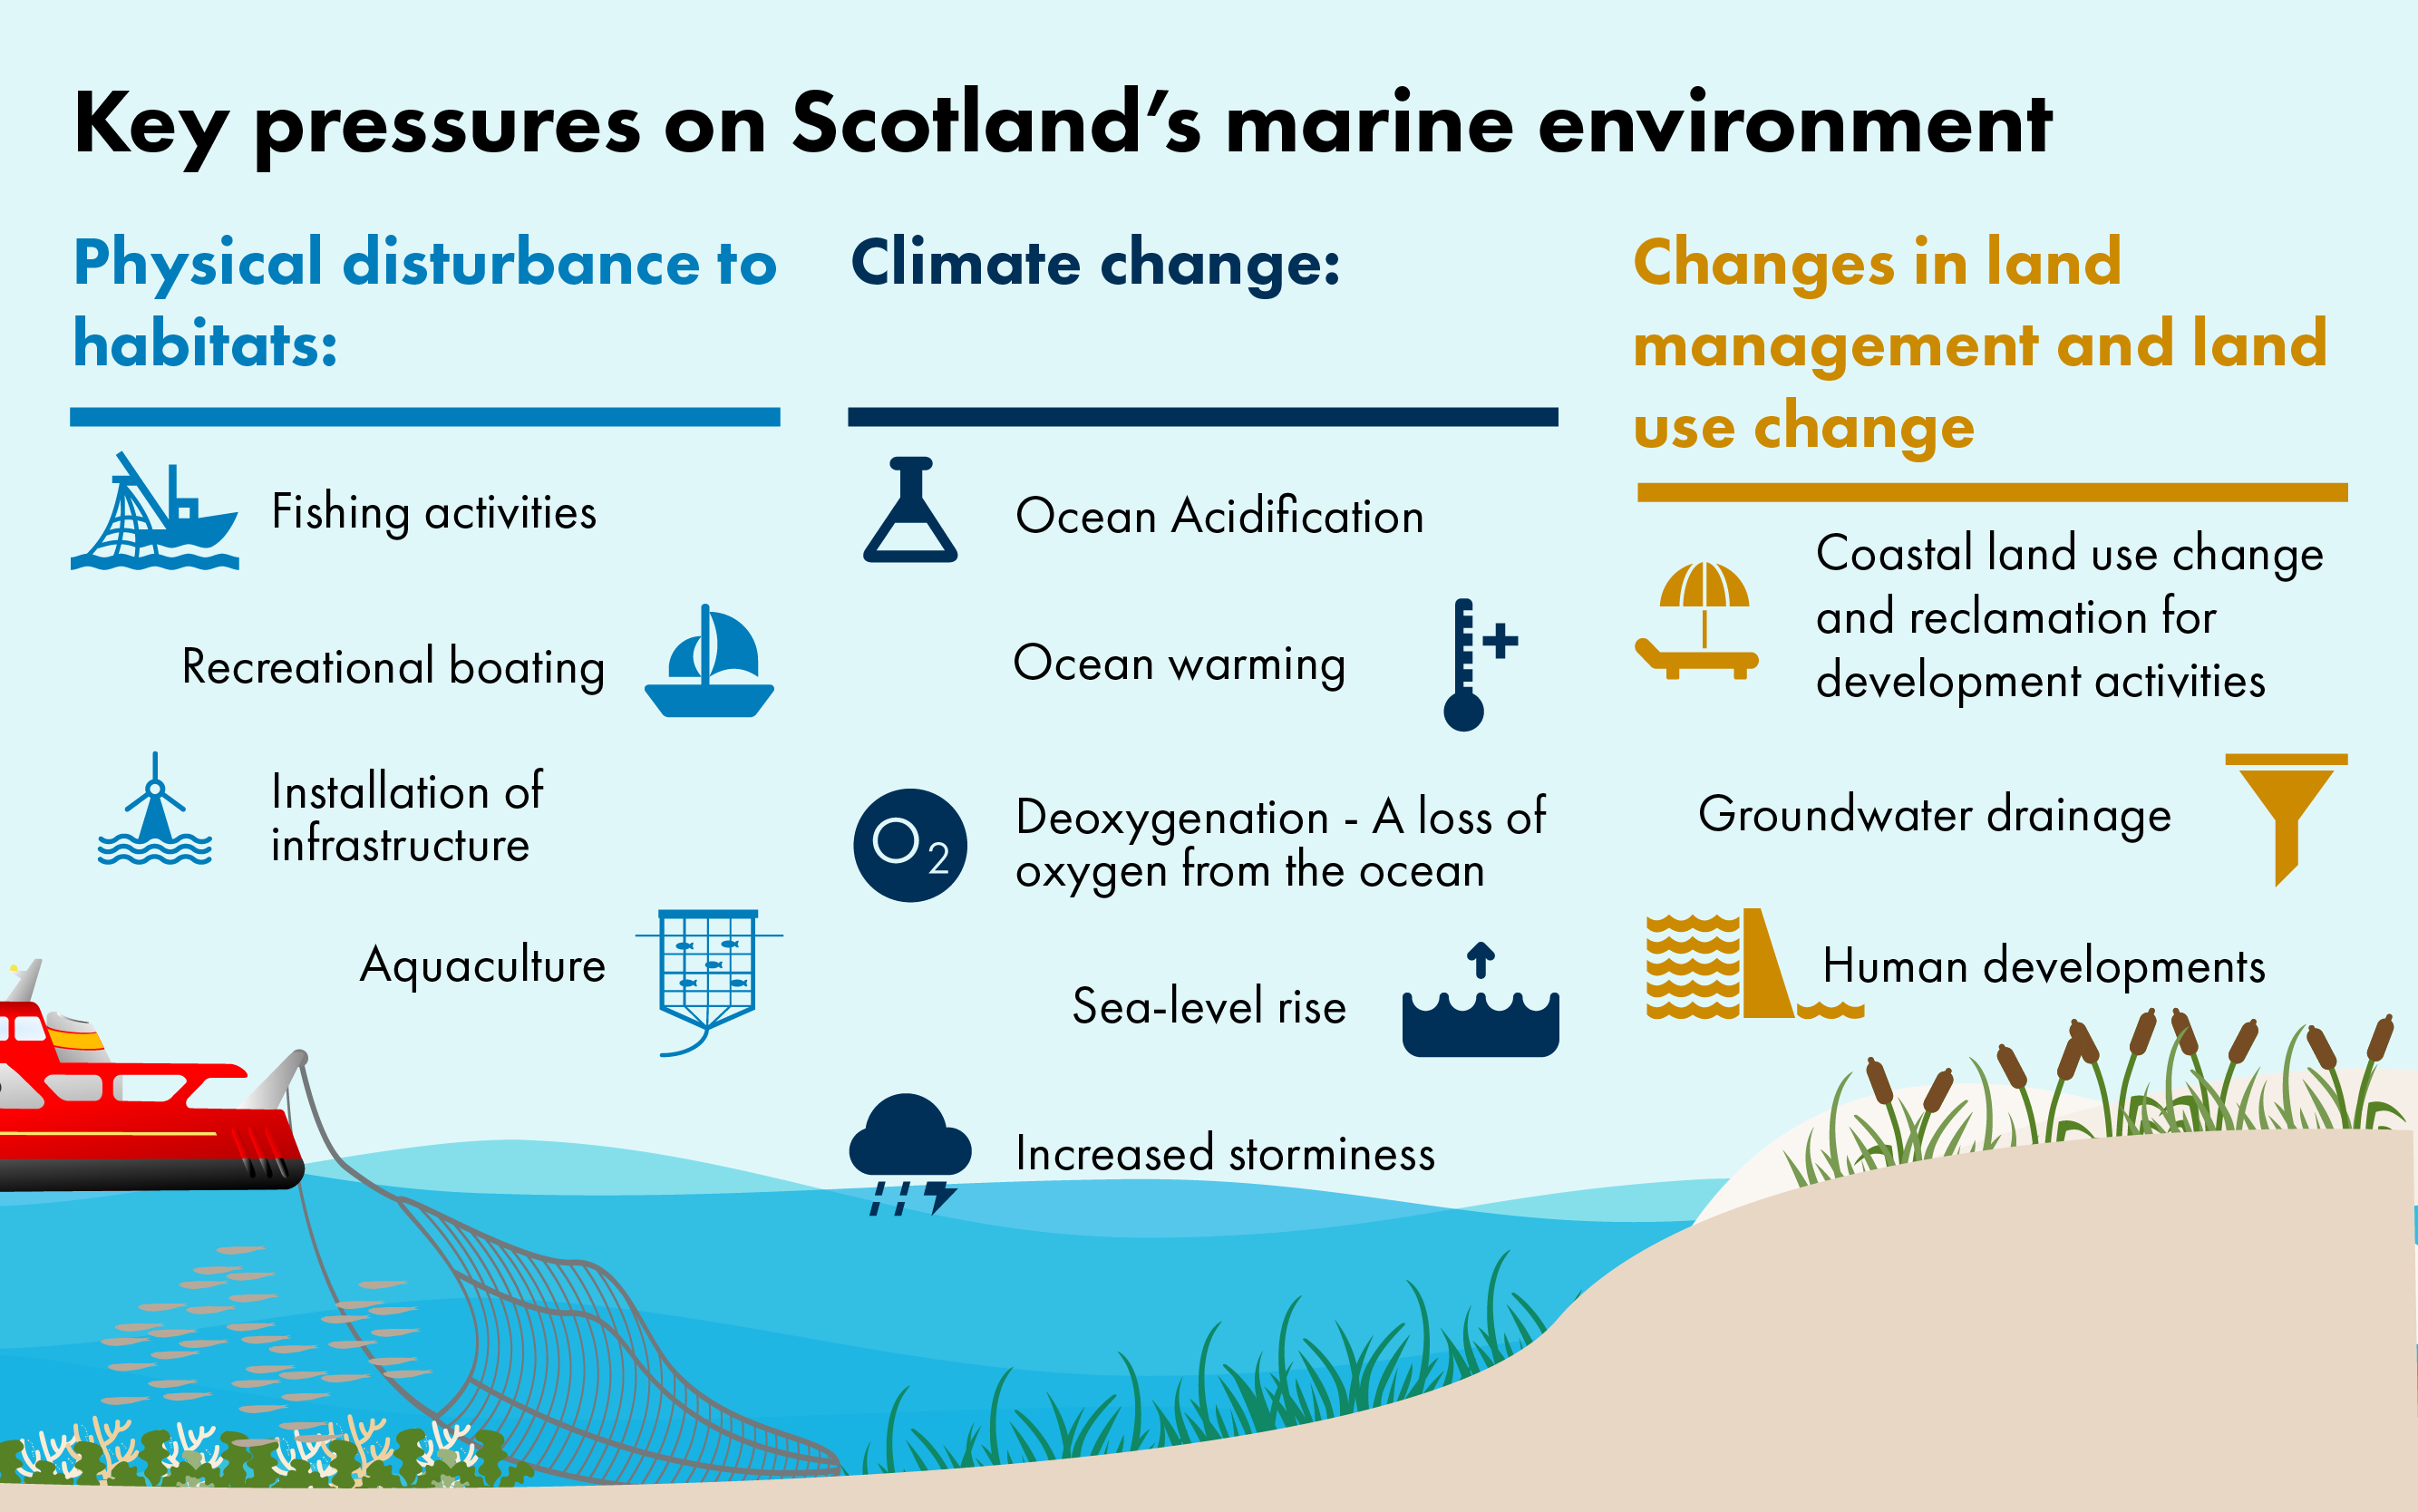 There are a range of pressures on the marine environment relates to physical disturbance to habitats, climate change and changes in land management and land use change. Examples include fishing activities, ocean warming and acidification, coastal land use change and human developments.